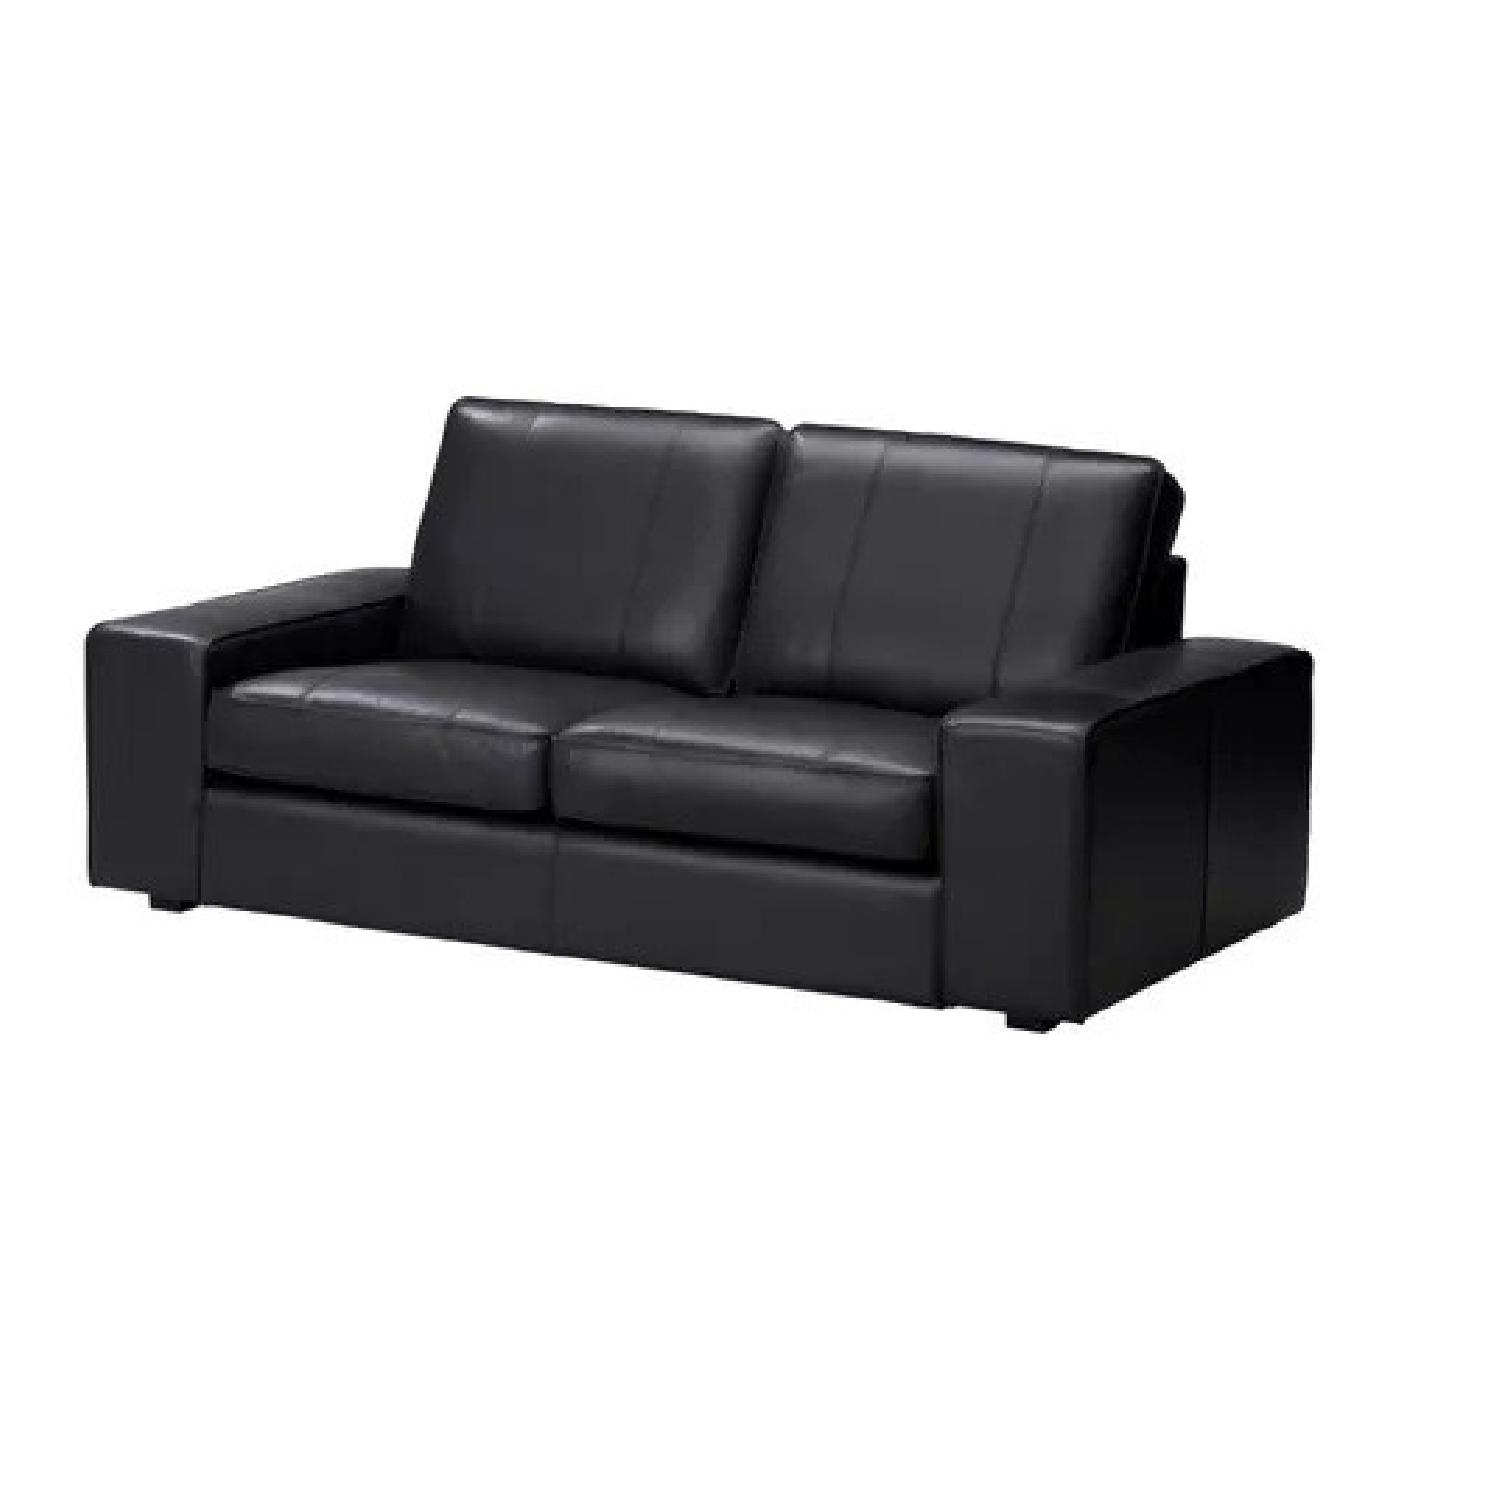 leather room open drawer zone ii living reclining loveseat furniture ultimate angle home